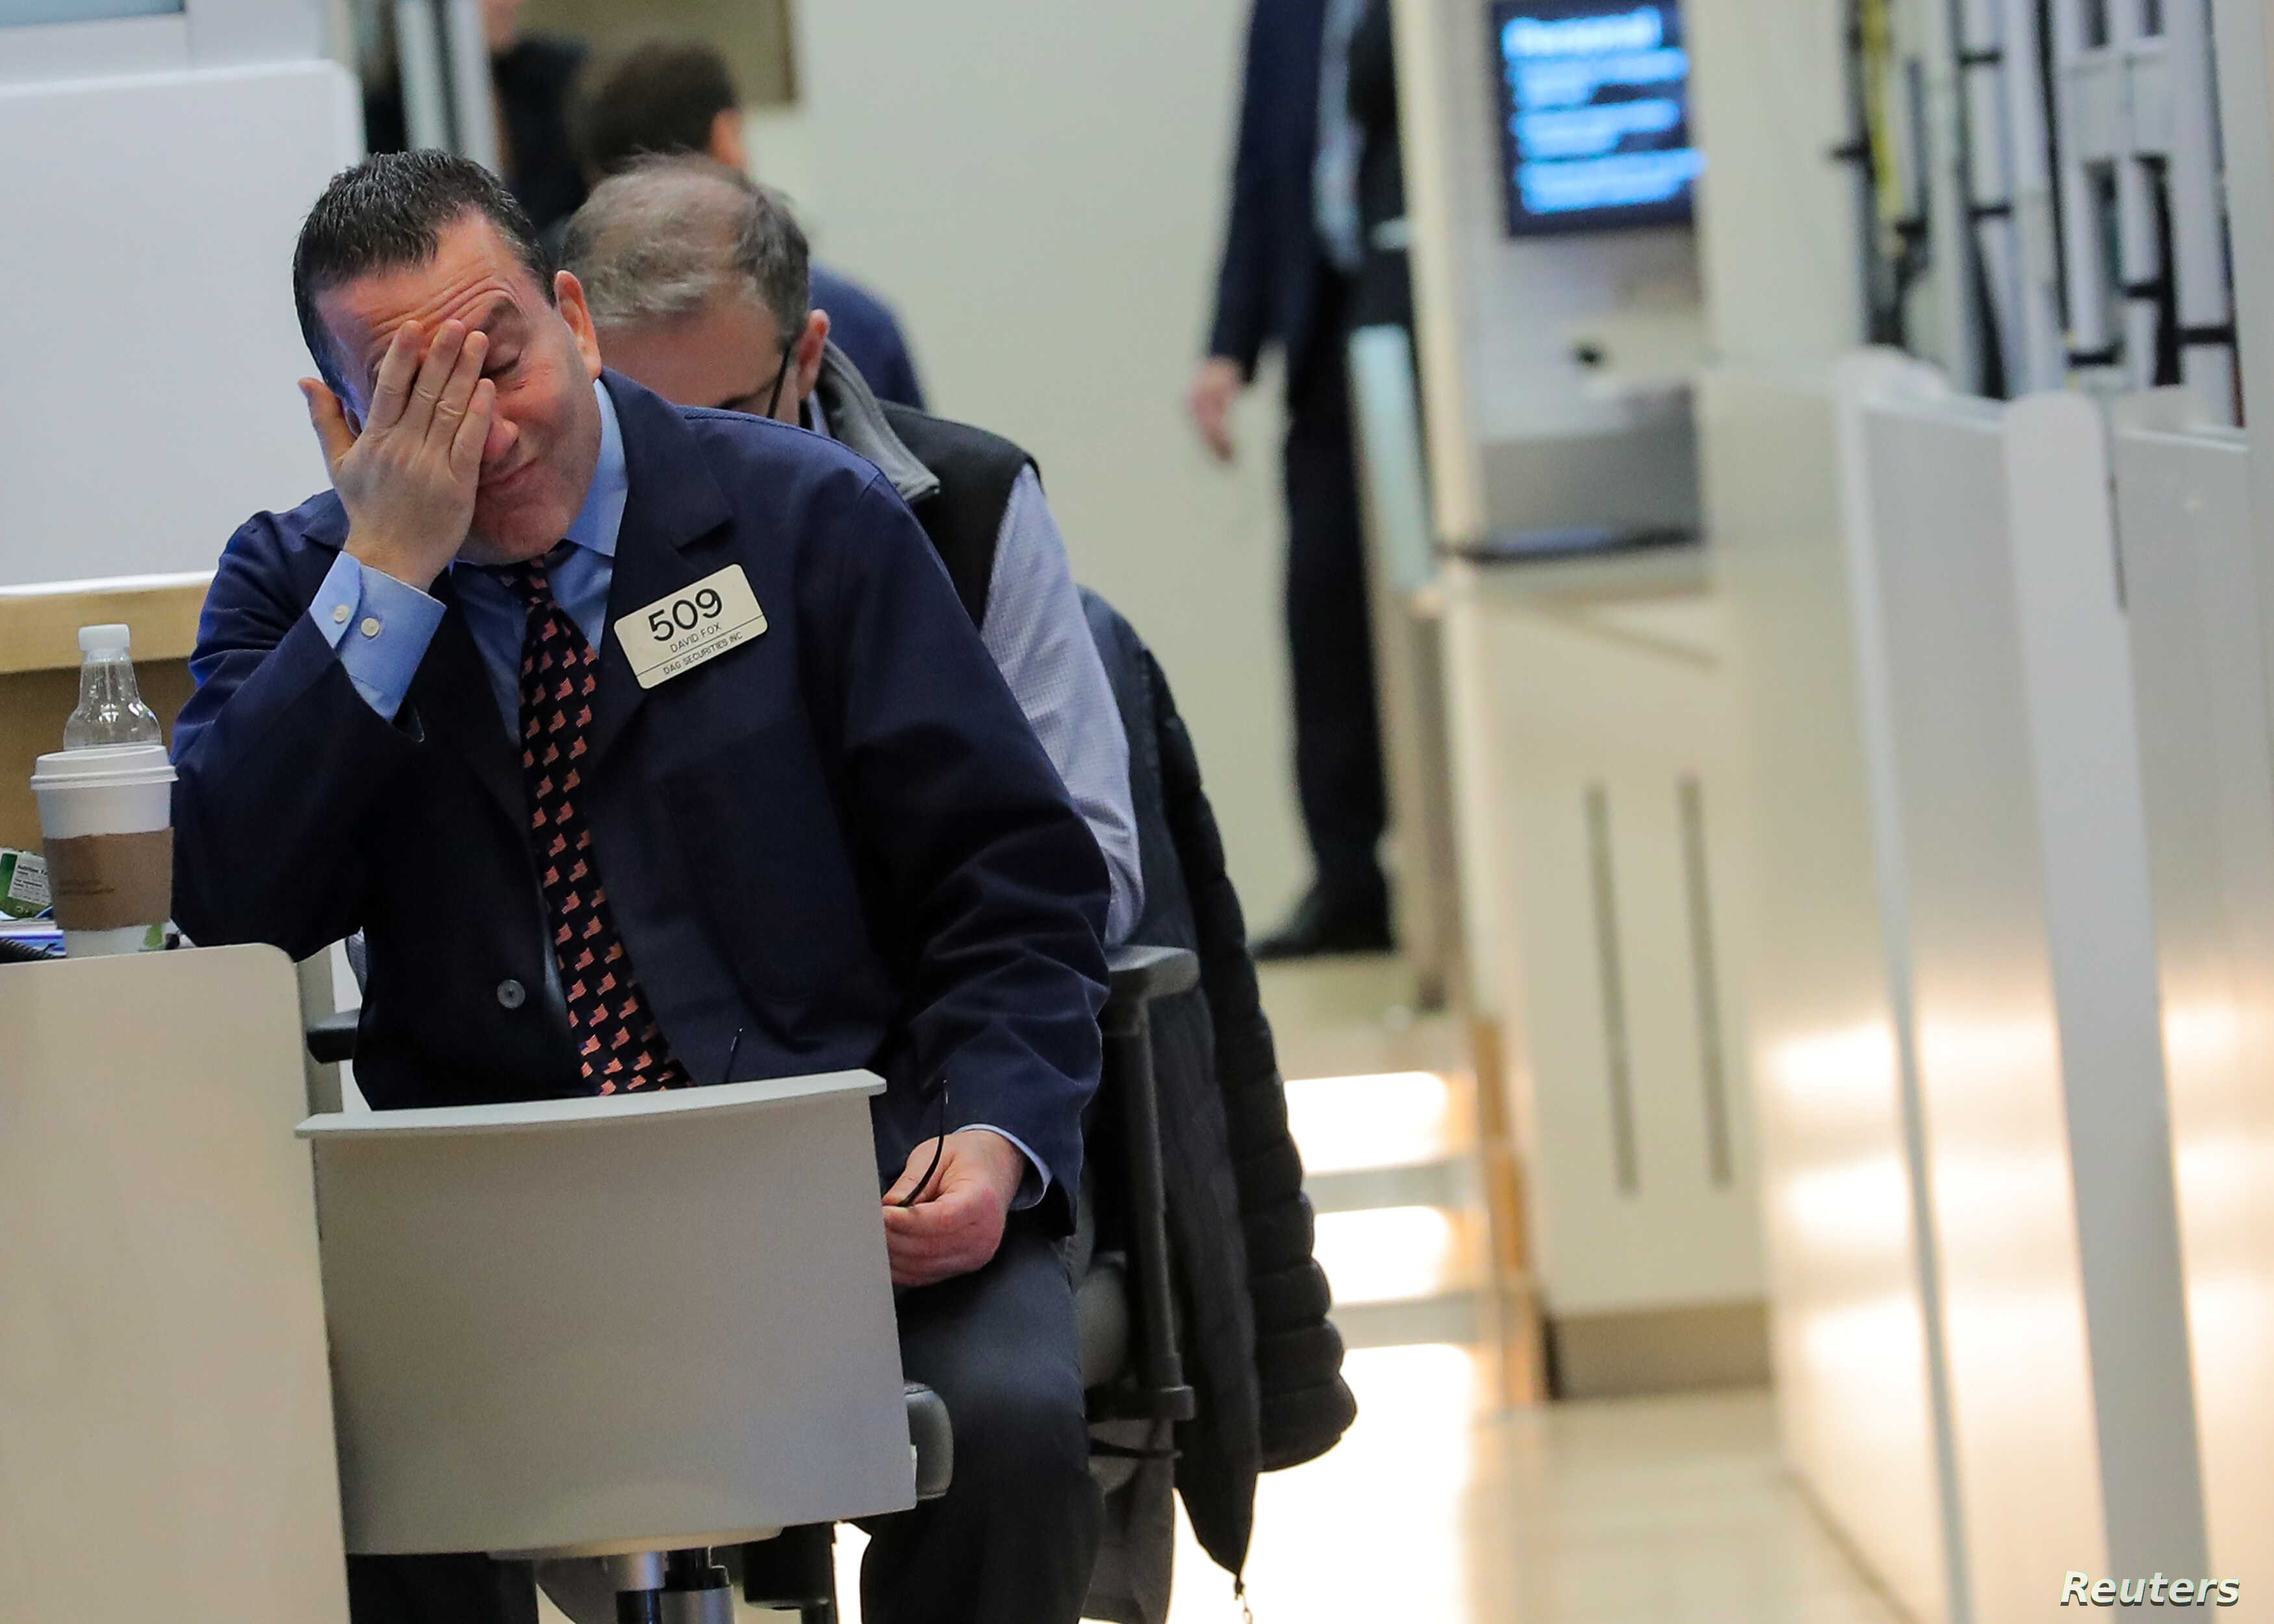 Traders who work on the floor of the New York Stock Exchange in New York, Dec. 14, 2018, react to a tough day as stocks fell sharply.